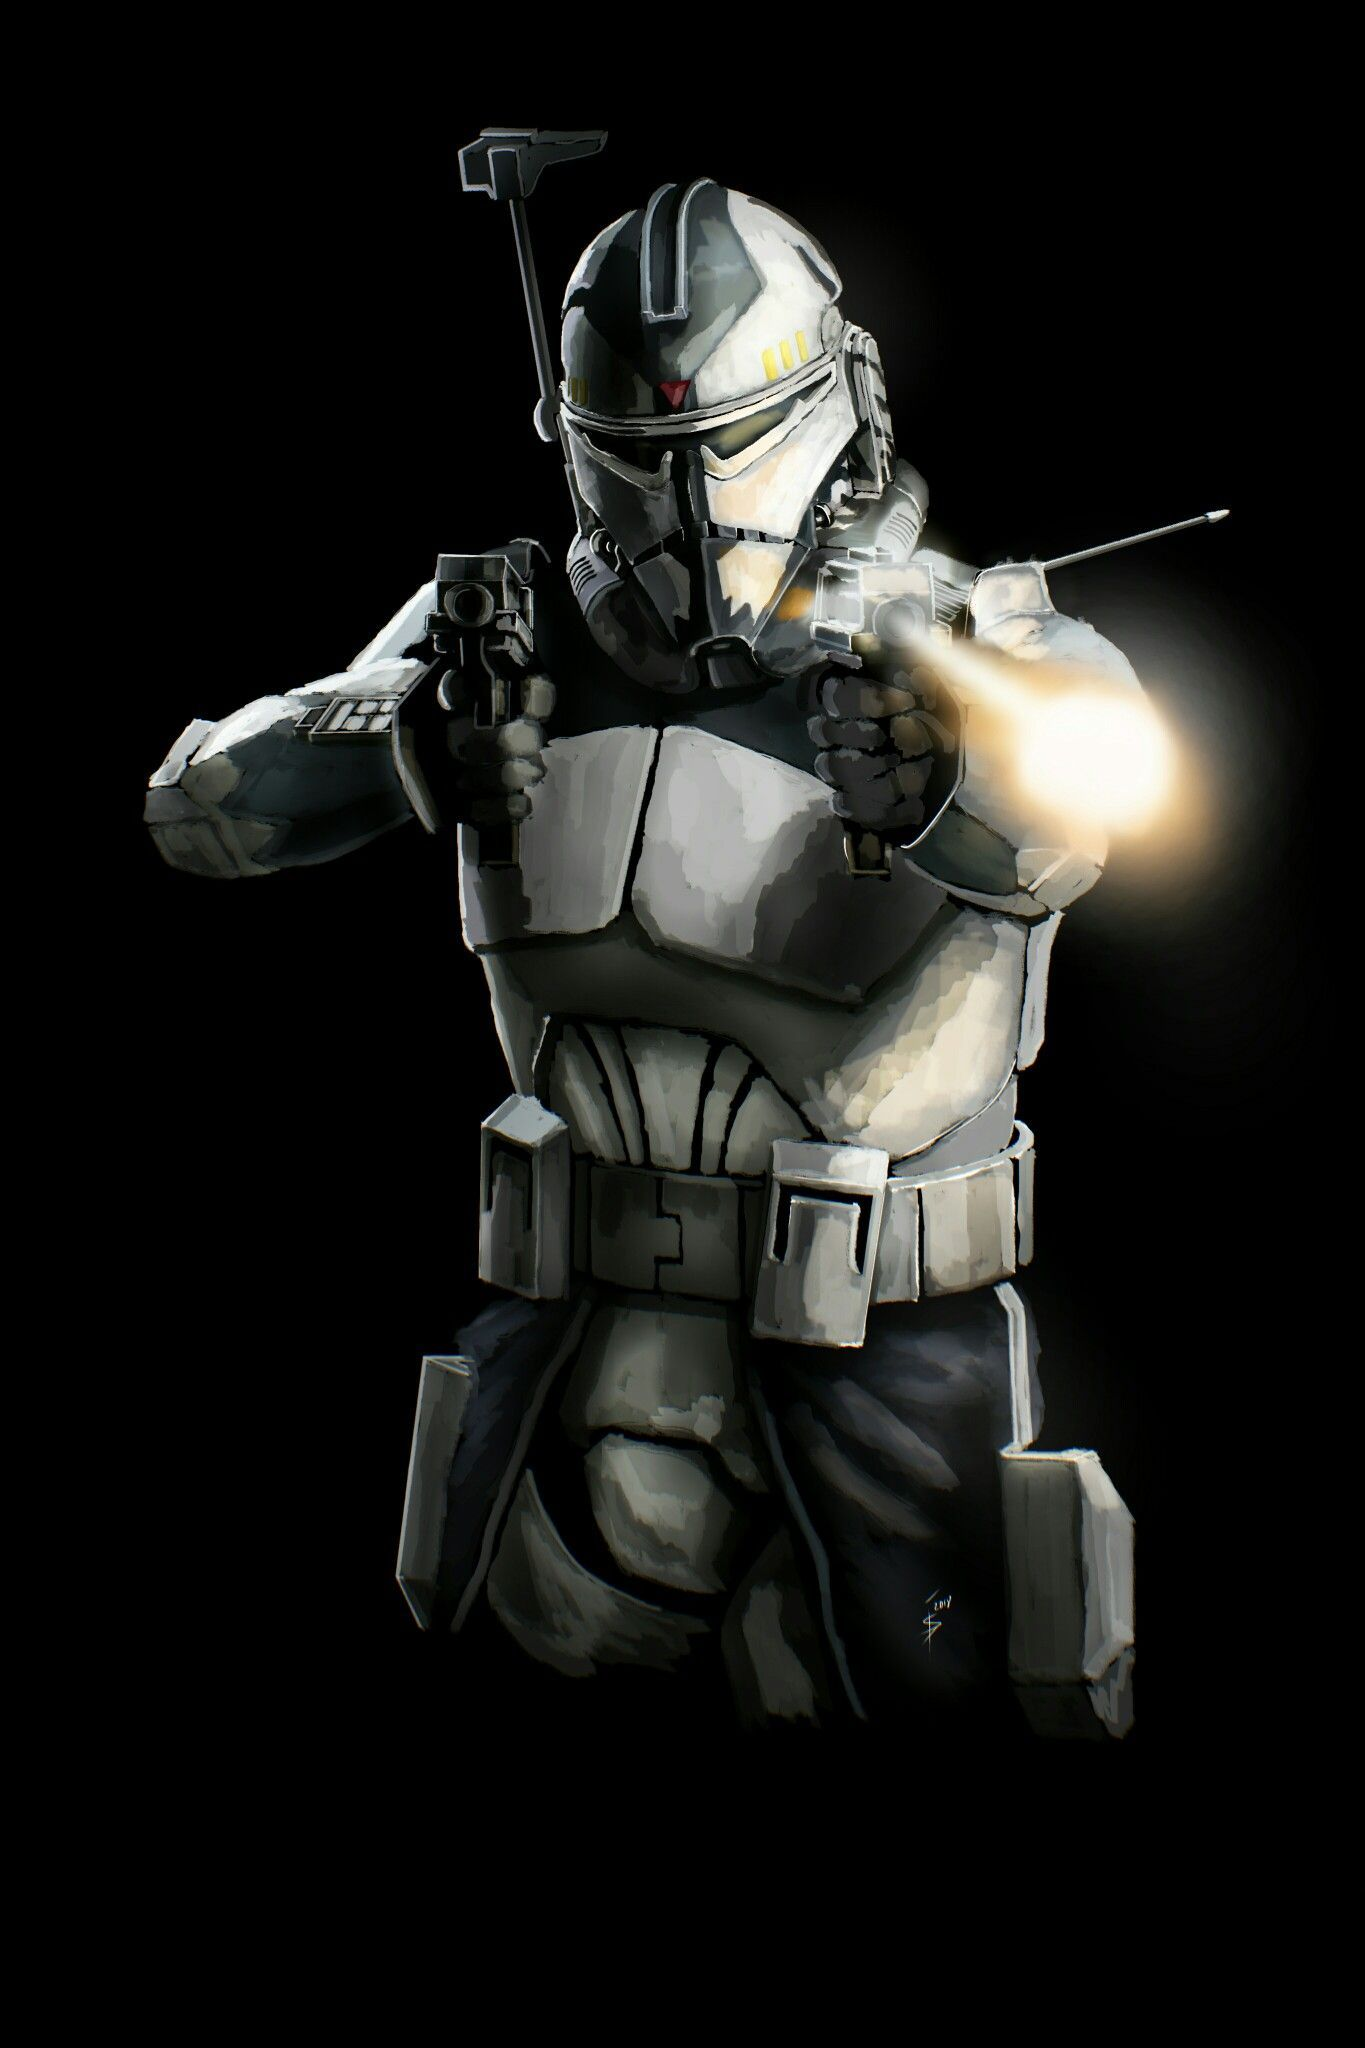 Commander Wolffe action